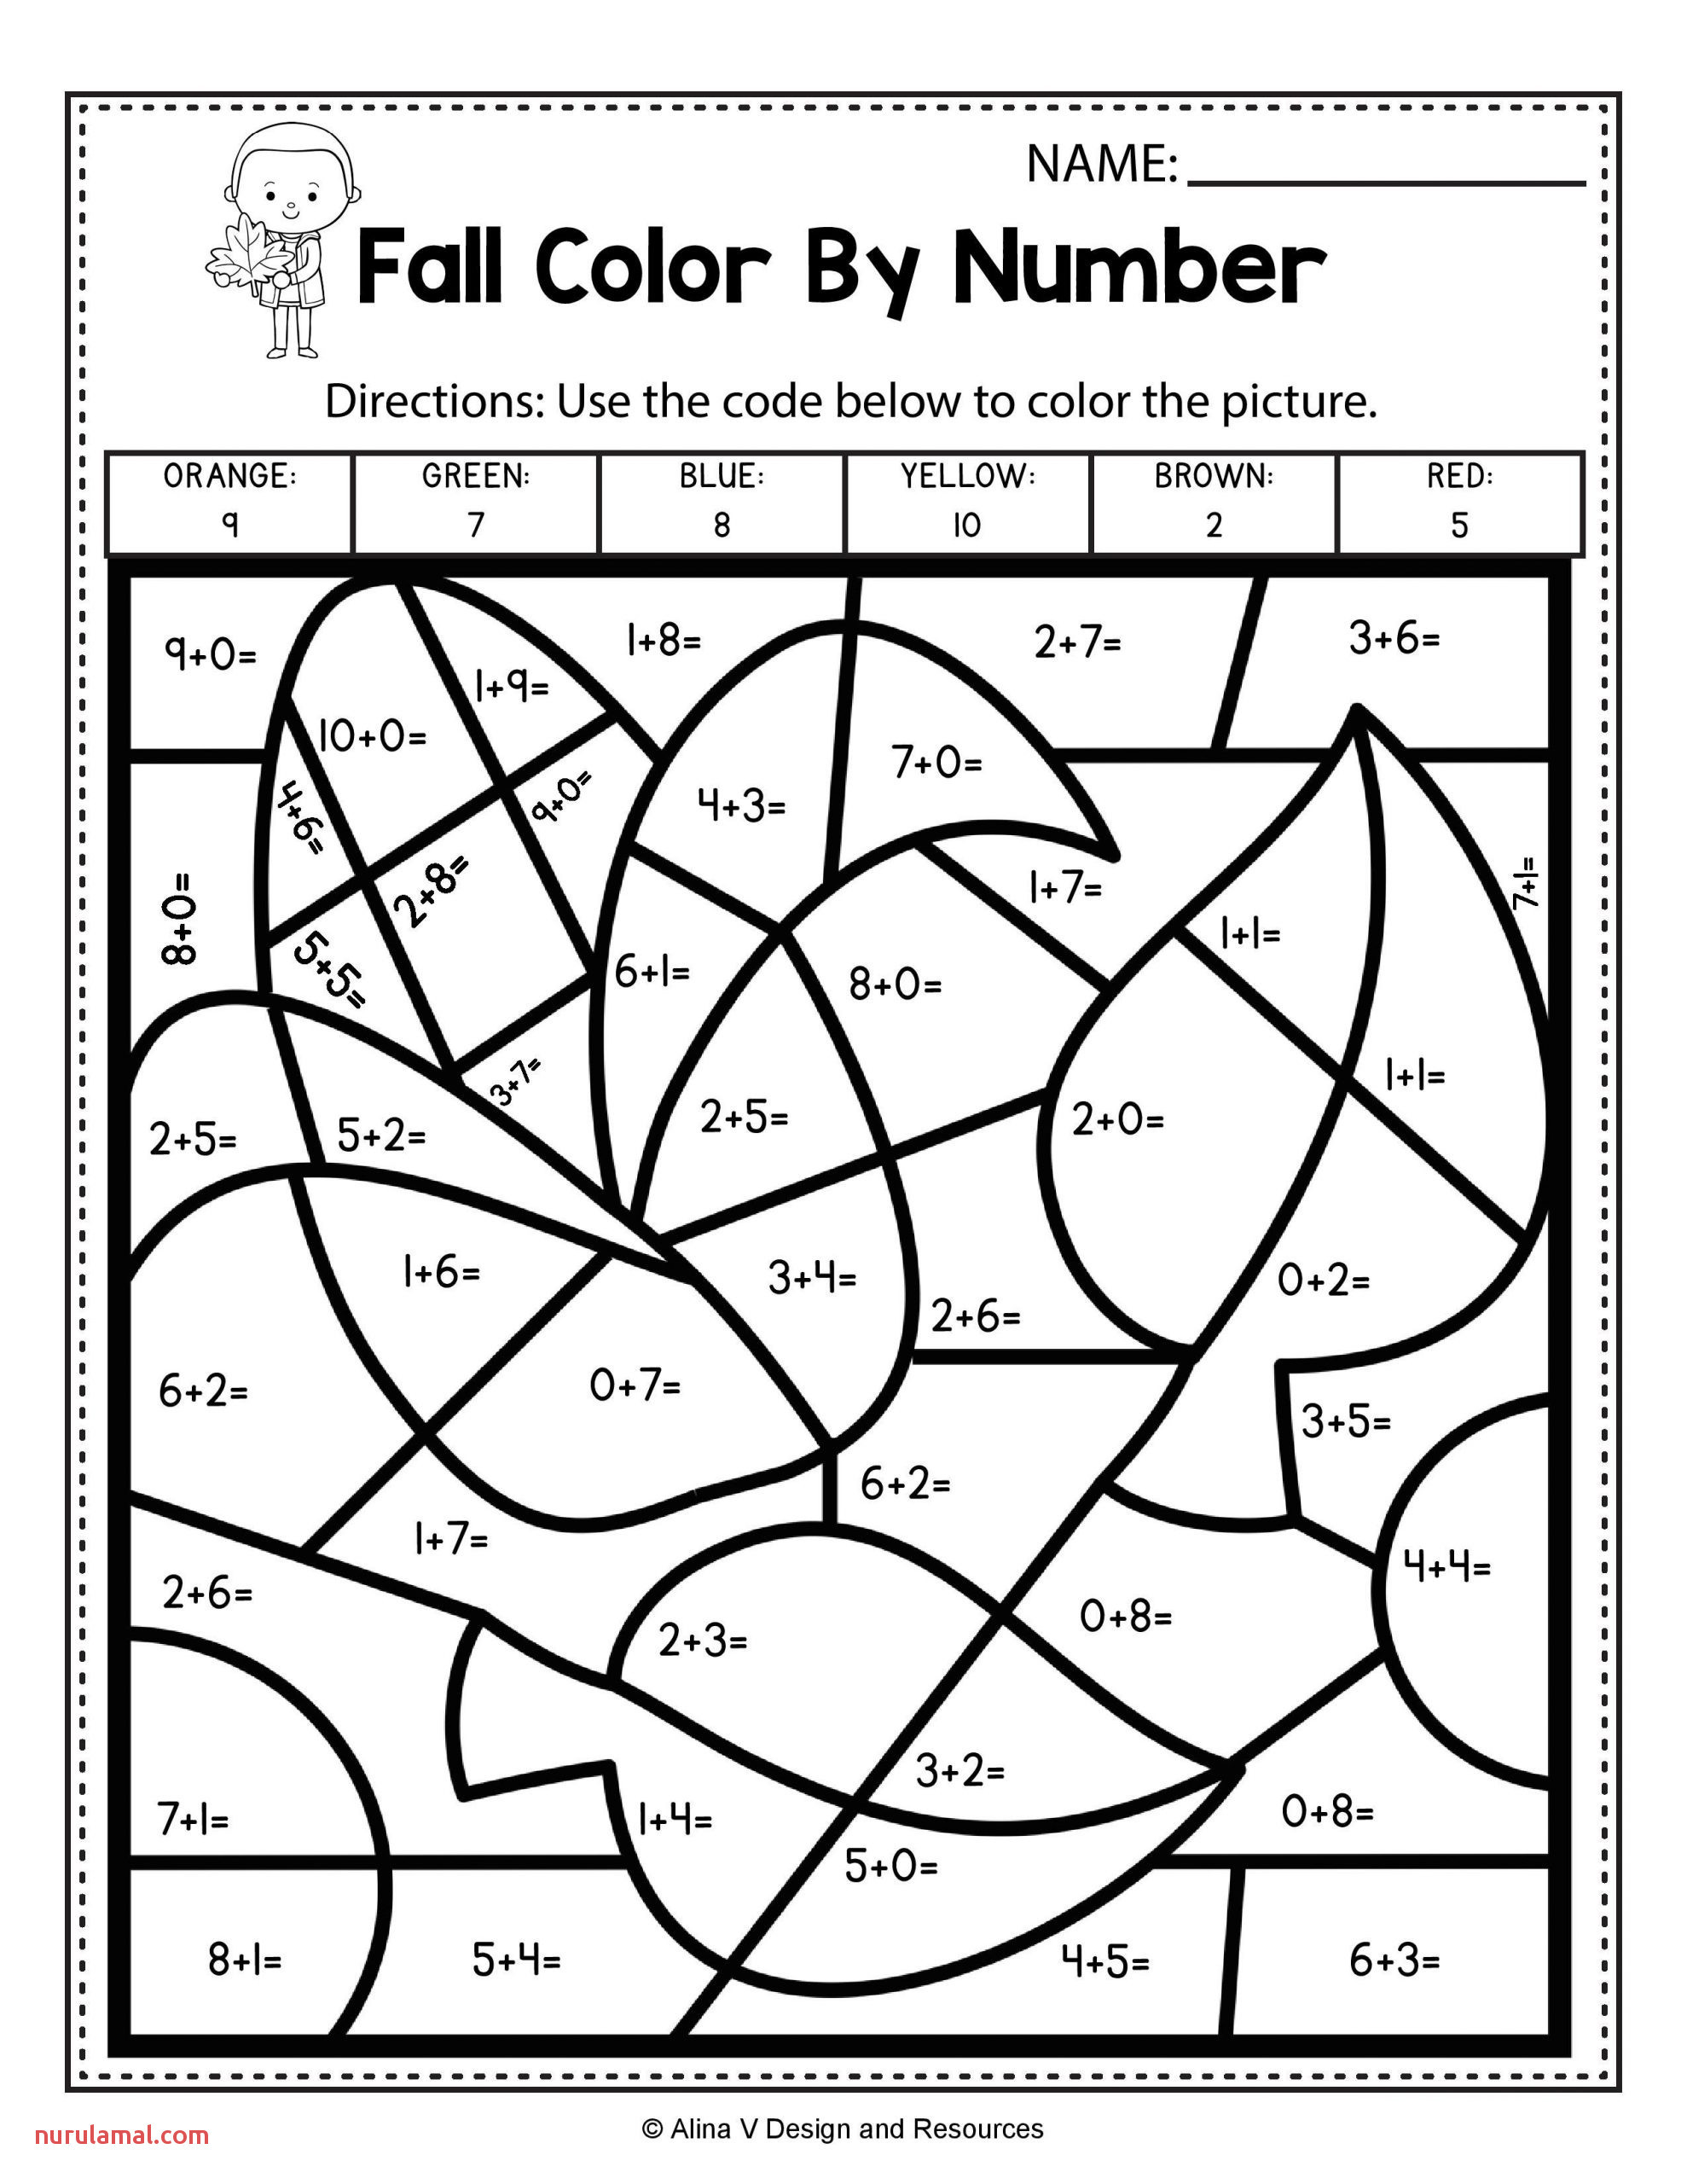 Abeka 5th Grade Math Worksheets Abeka Worksheets for K4 Printable and Activities 4th Grade